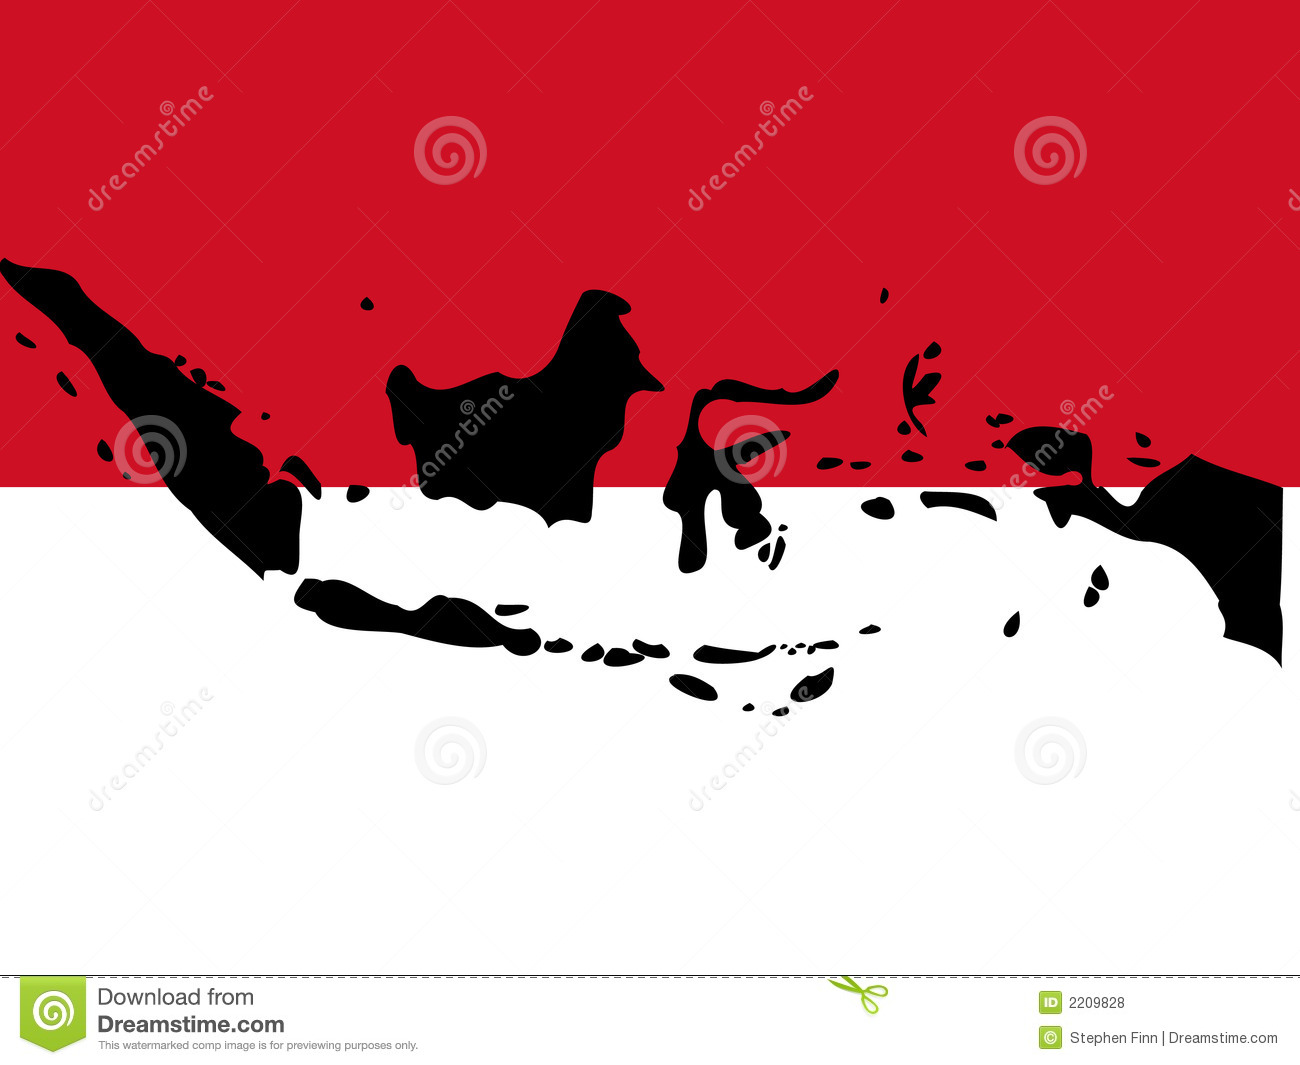 Indonesia clipart #9, Download drawings